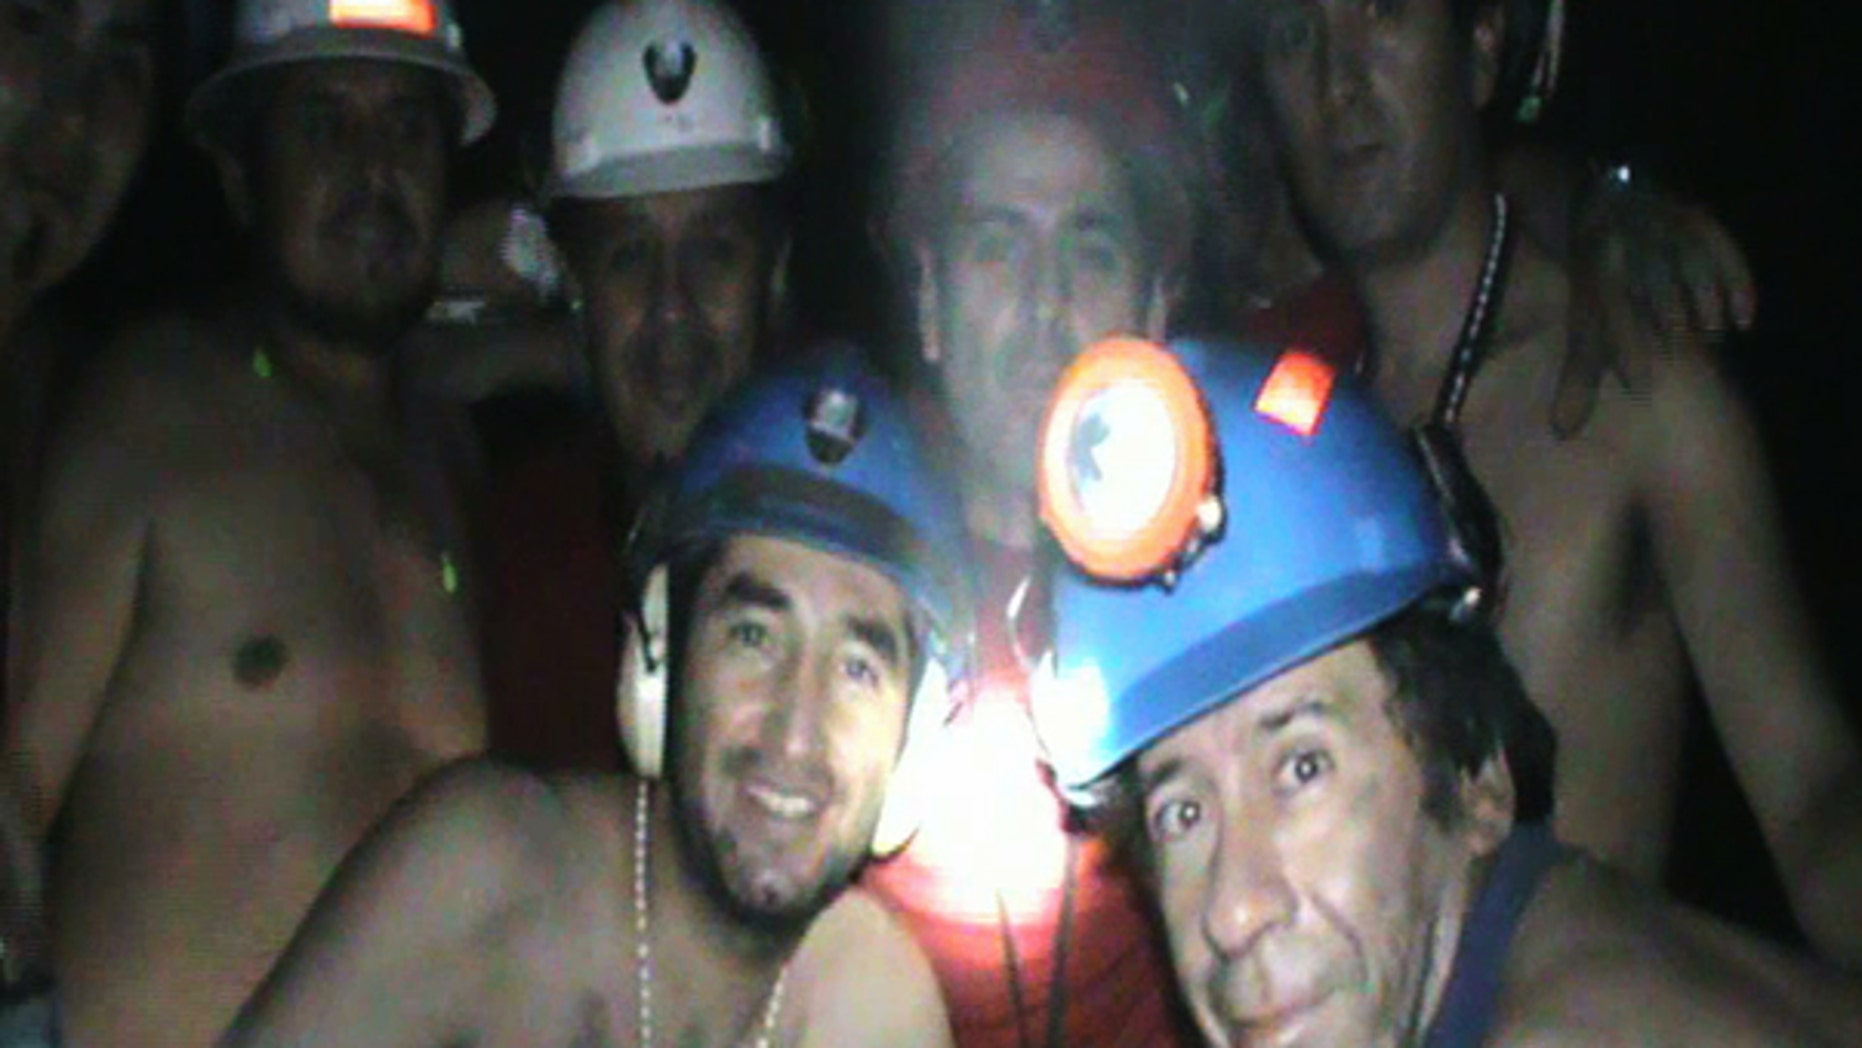 Sept. 17: In this TV grab taken from a video released by Chile's Presidency, trapped miners celebrate inside the San Jose mine in Copiapo, Chile. Drilling equipment pounded its way into one of the caverns where 33 miners have been trapped for a month and a half, completing a bore hole ahead of schedule and raising hopes that the men can be pulled out earlier than expected.